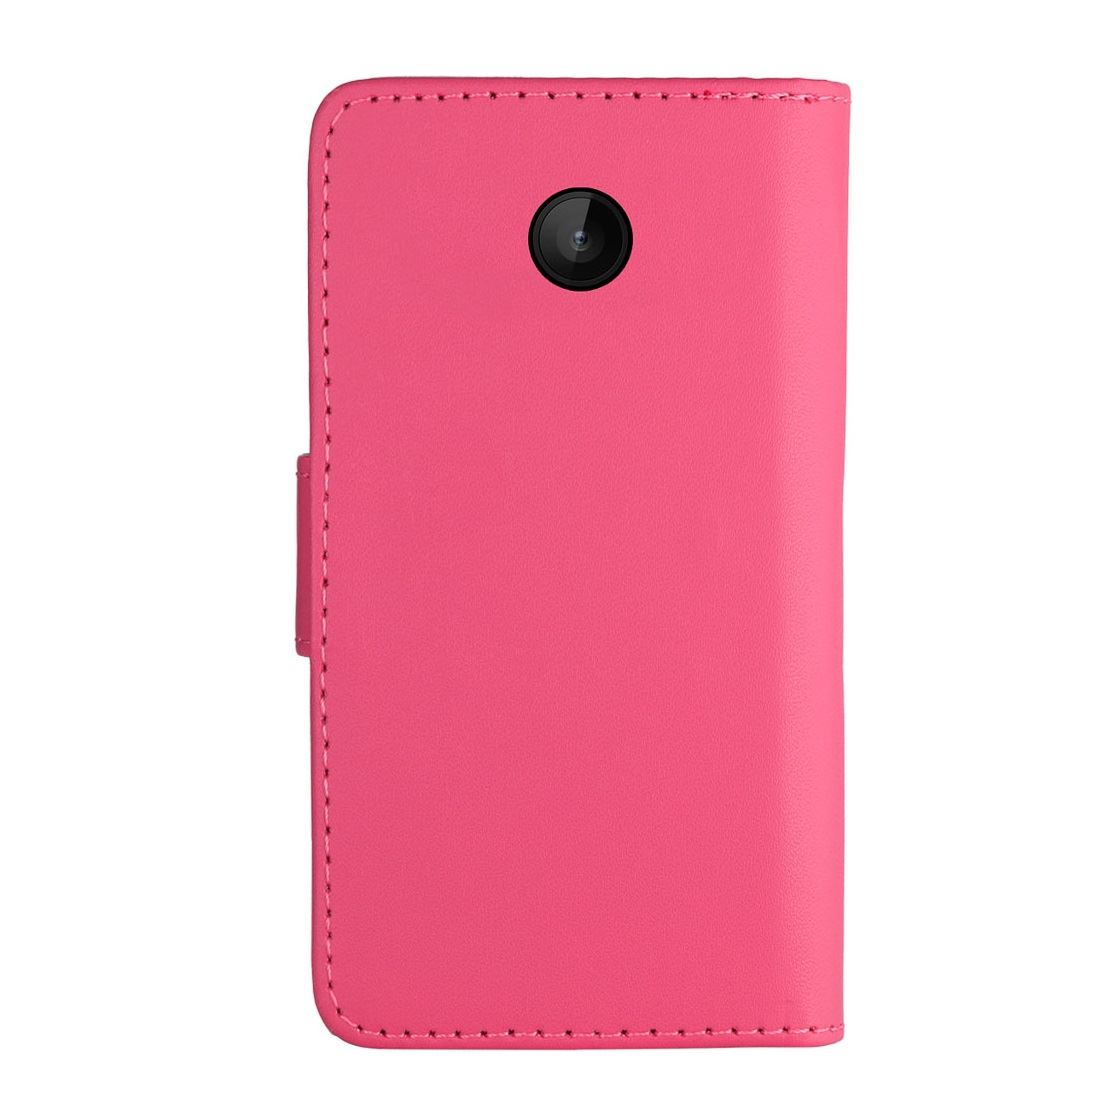 32nd-Book-Series-Synthetic-PU-Leather-Flip-Wallet-Case-Cover-Nokia-Lumia-630 thumbnail 21